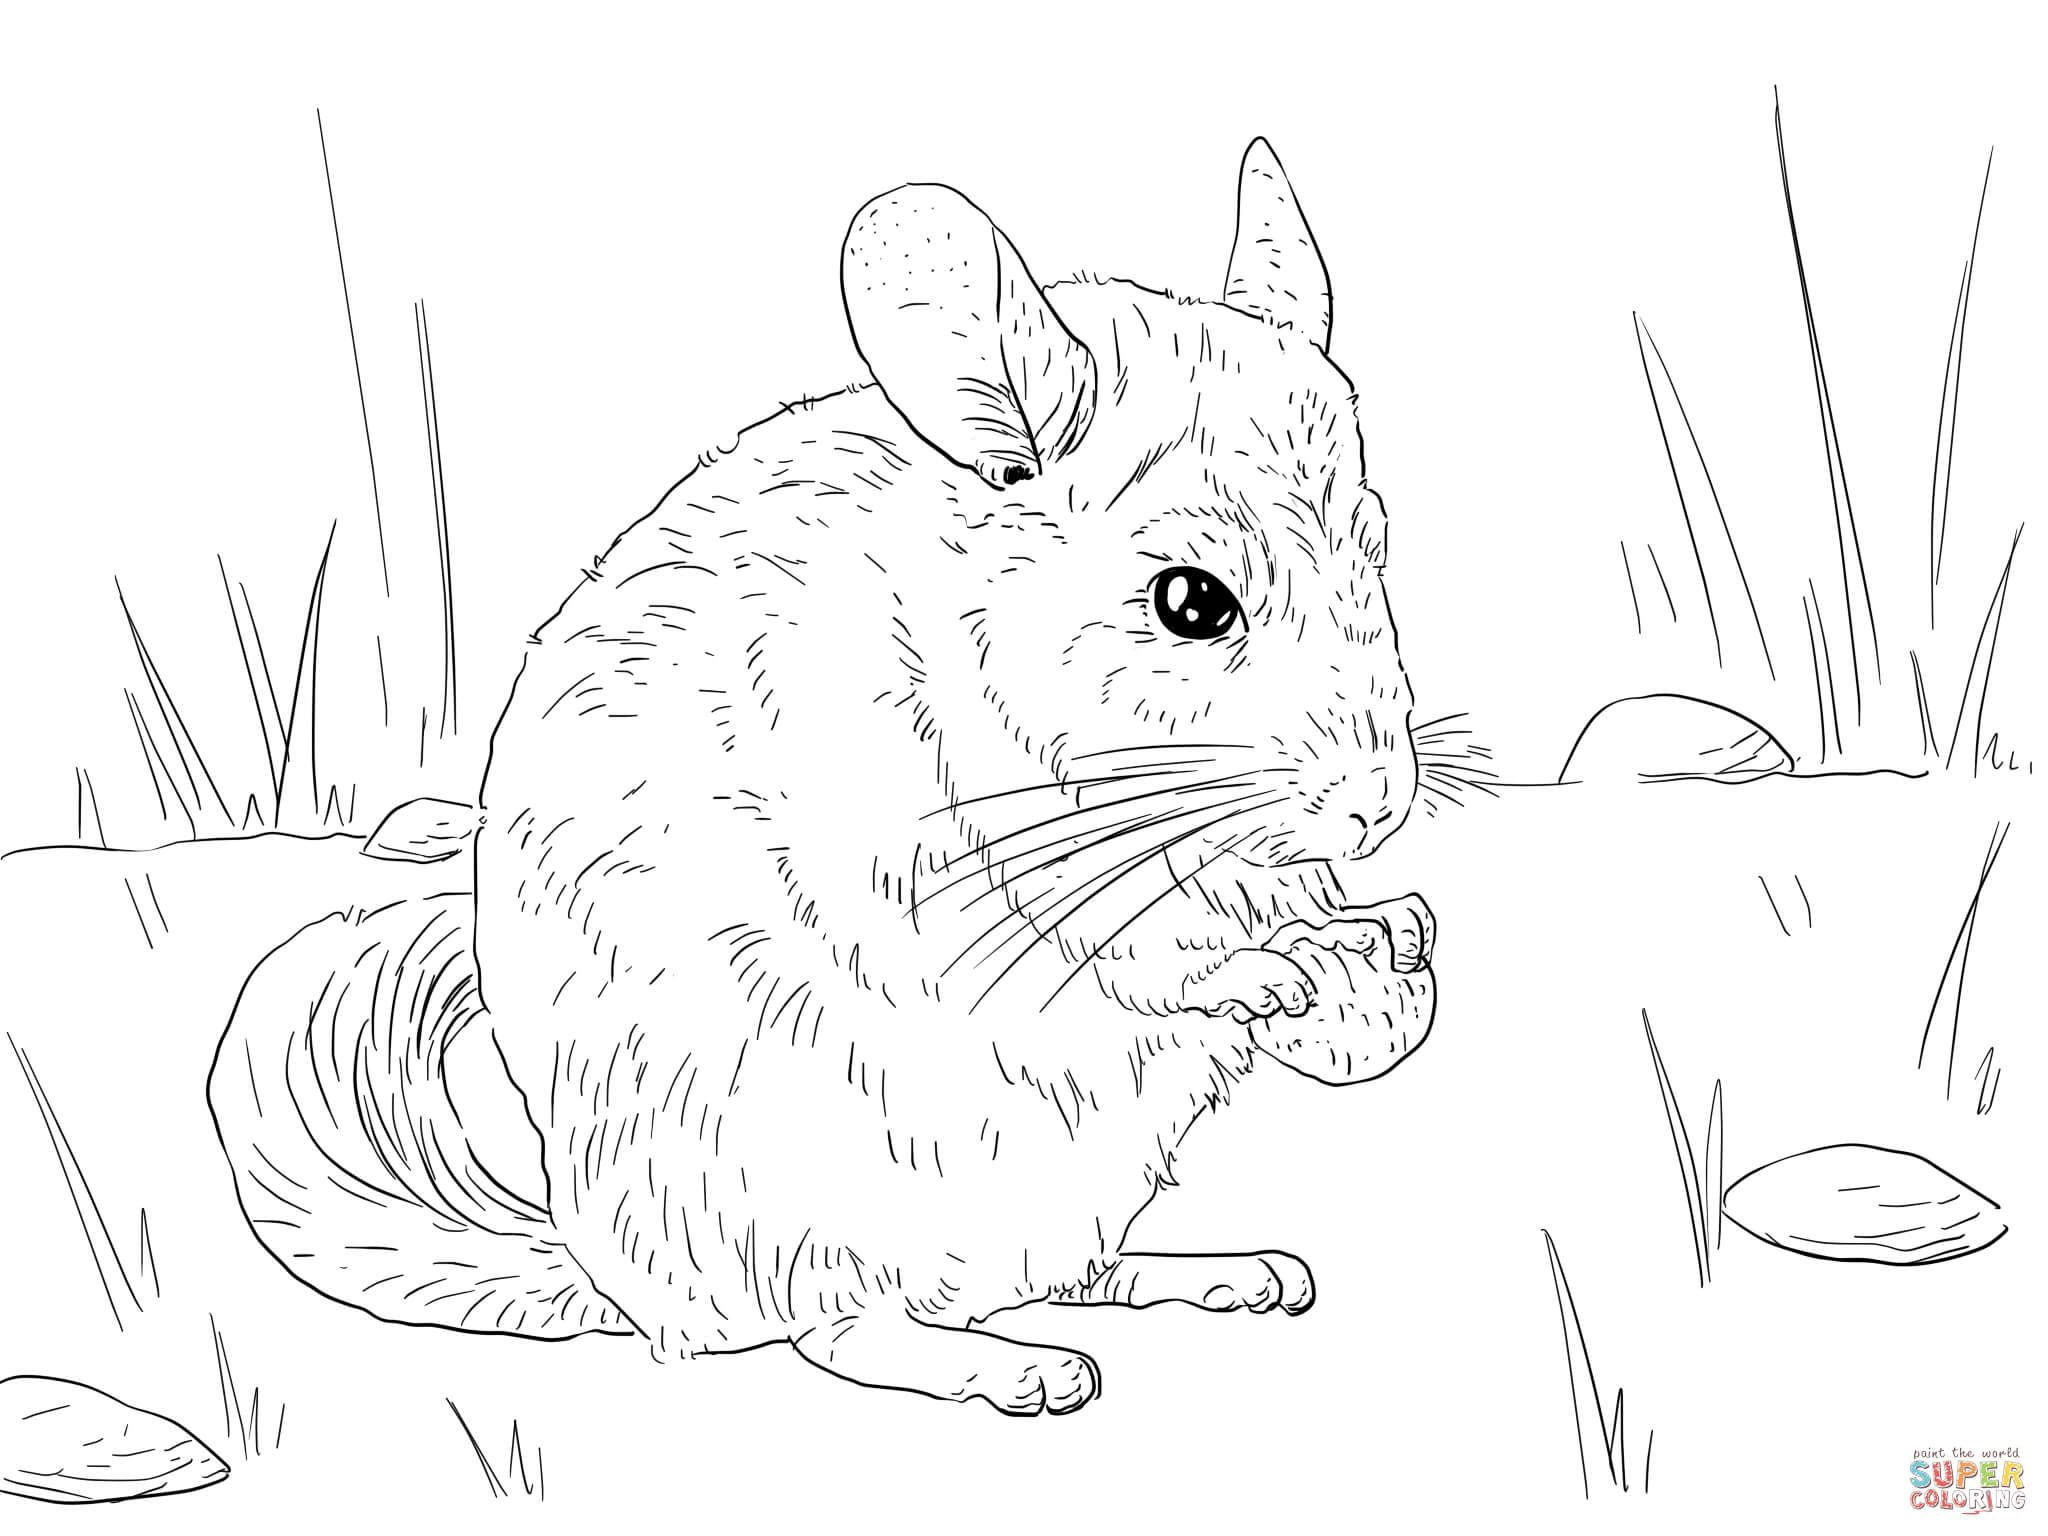 Long Tailed Chinchilla Coloring Page Free Printable Coloring Pages Animal Coloring Pages Coloring Pages Chinchilla [ 1536 x 2048 Pixel ]